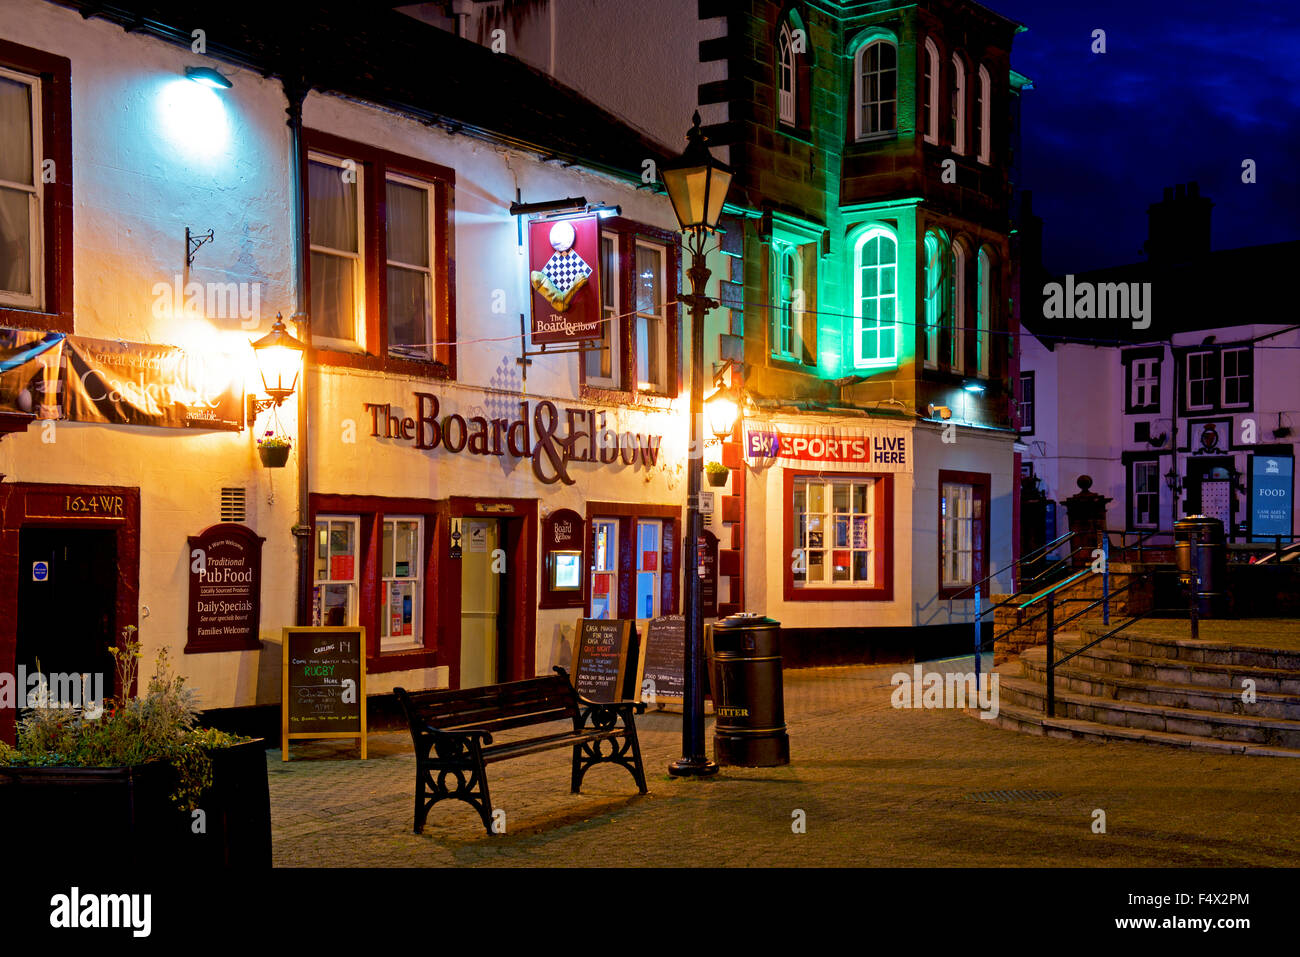 The Board & Elbow pub in Penrith, Cumbria, England UK - Stock Image